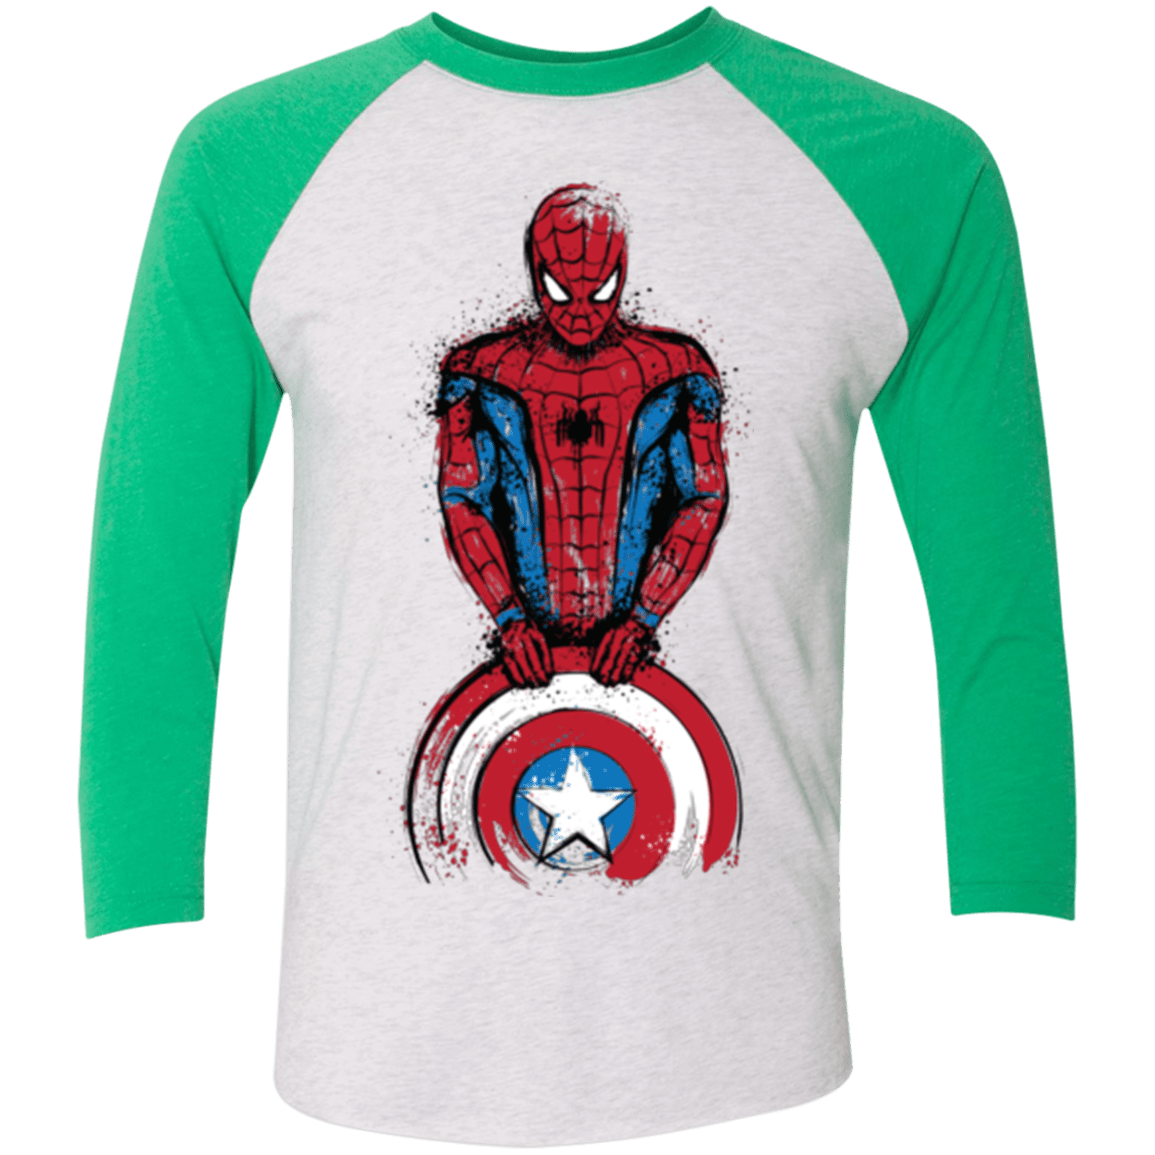 T-Shirts Heather White/Envy / X-Small The Spider is Coming Men's Triblend 3/4 Sleeve